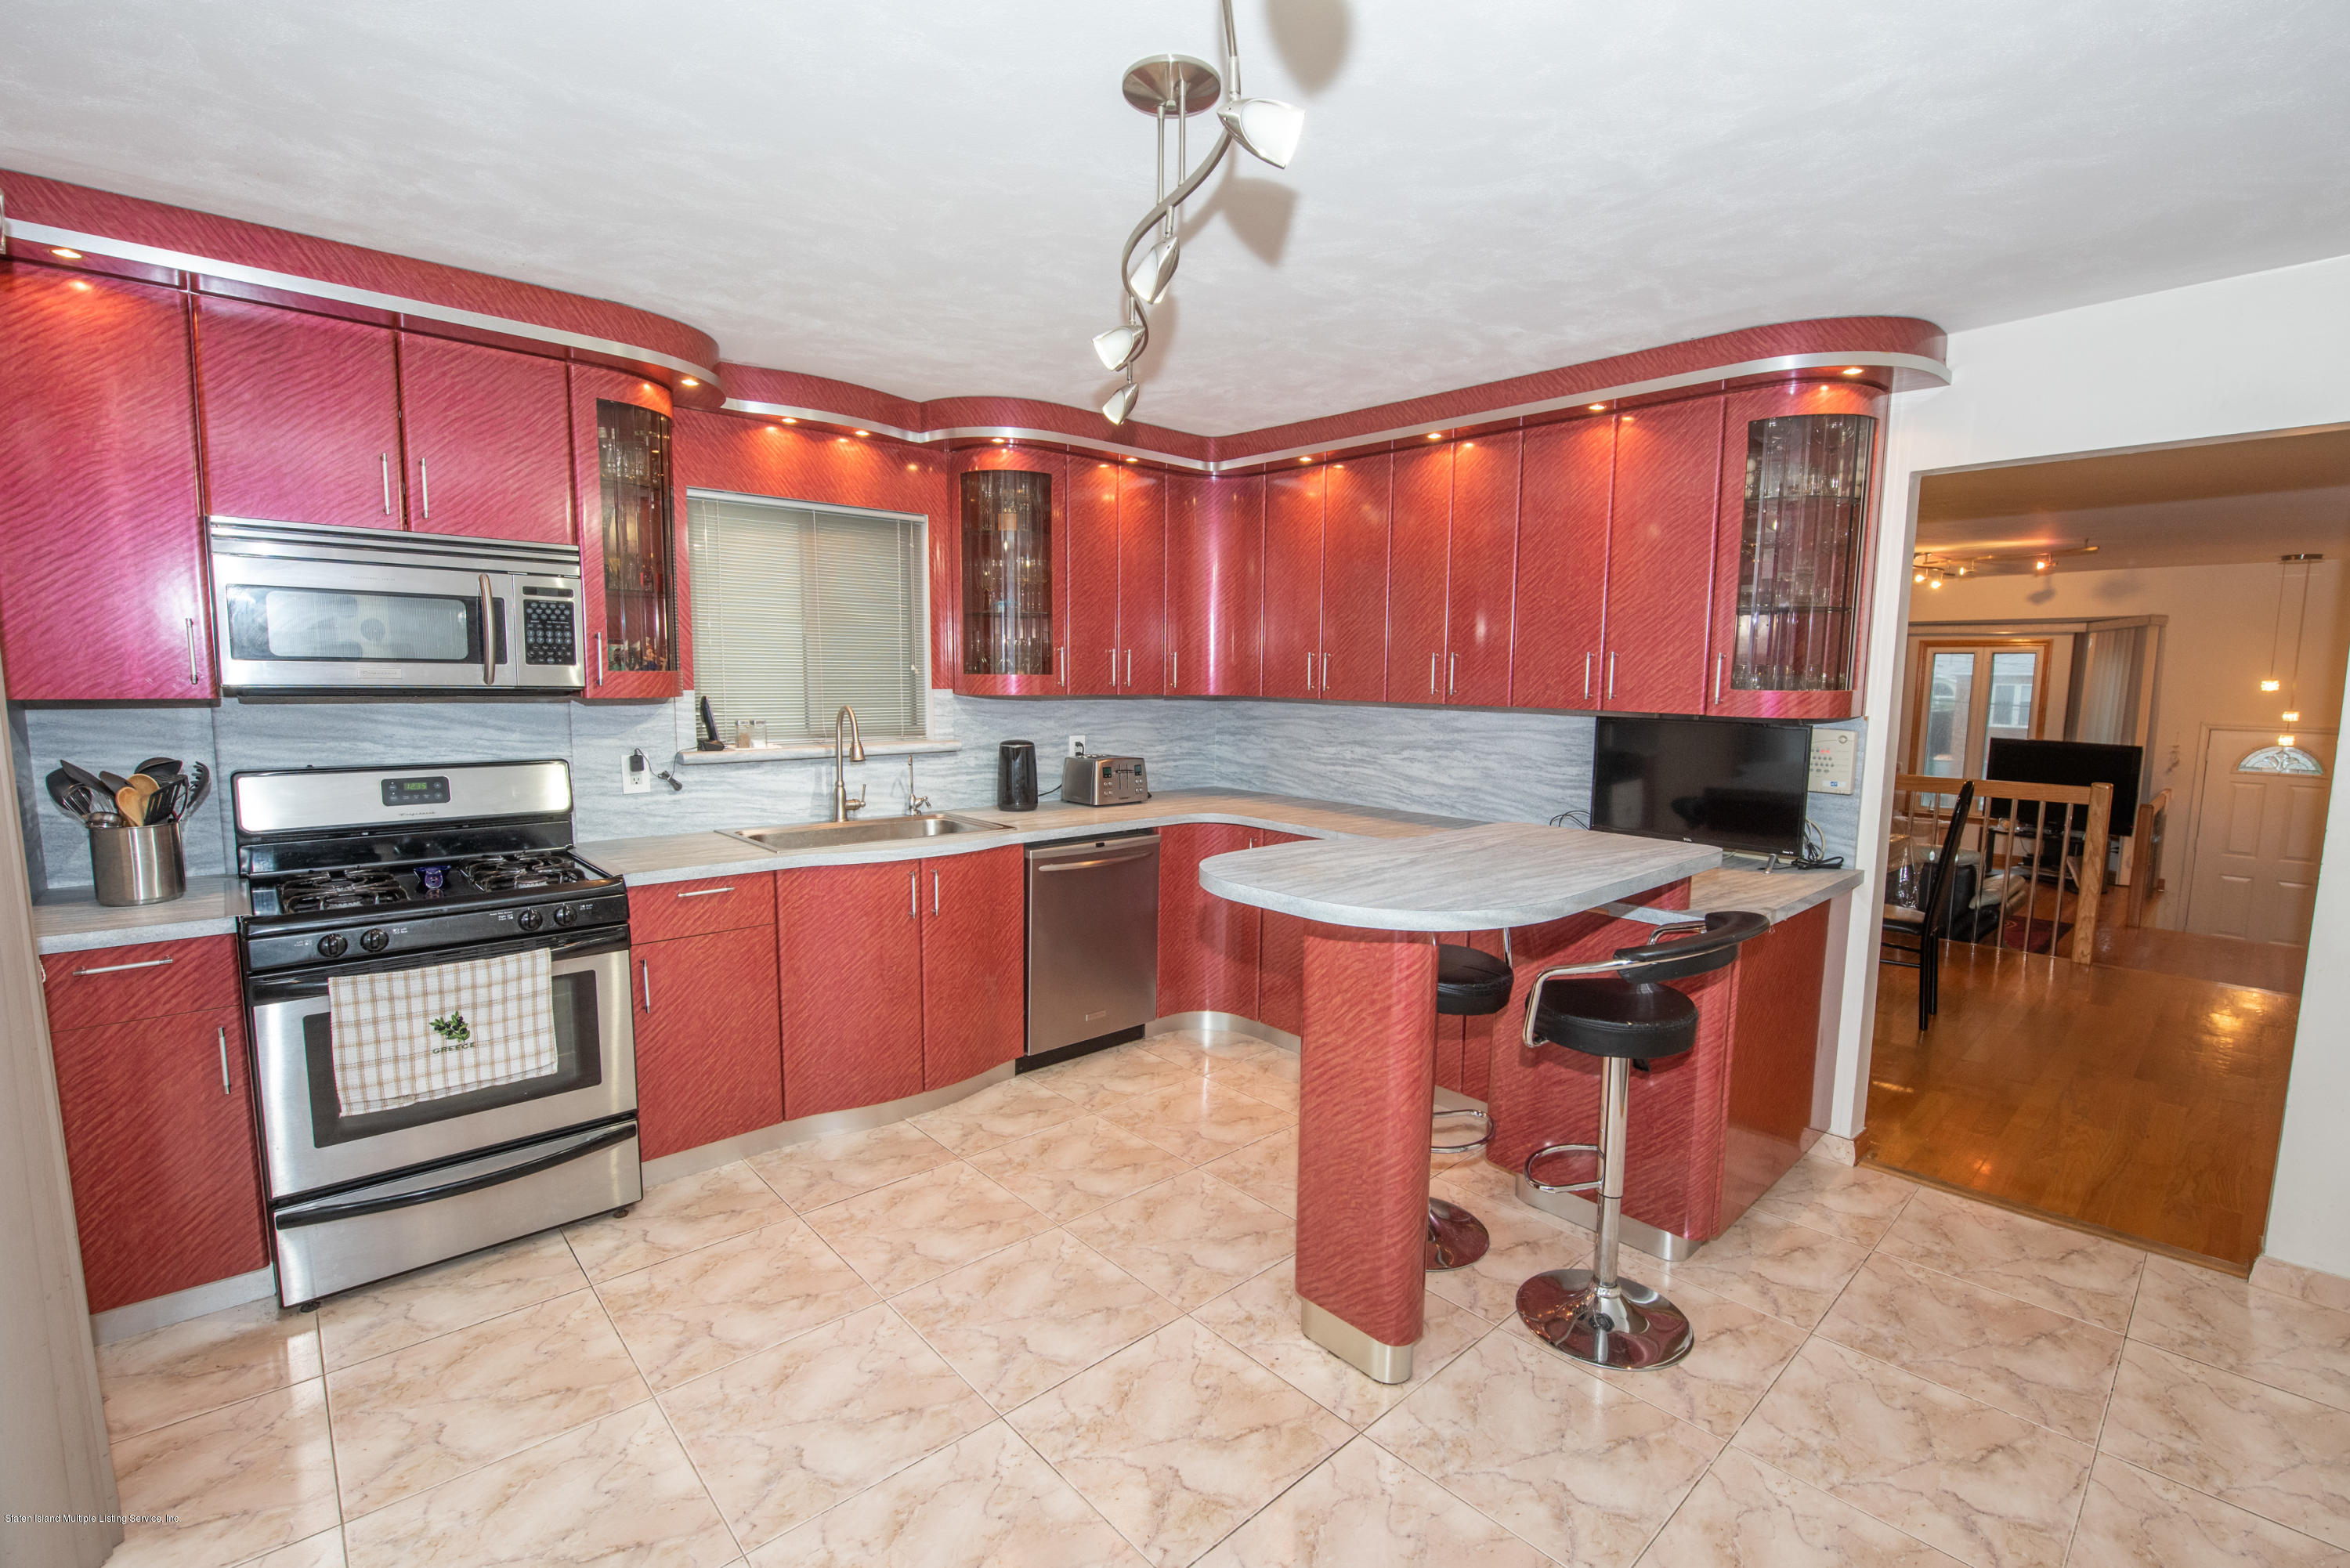 Single Family - Semi-Attached 76 Mcveigh Avenue  Staten Island, NY 10314, MLS-1133370-10